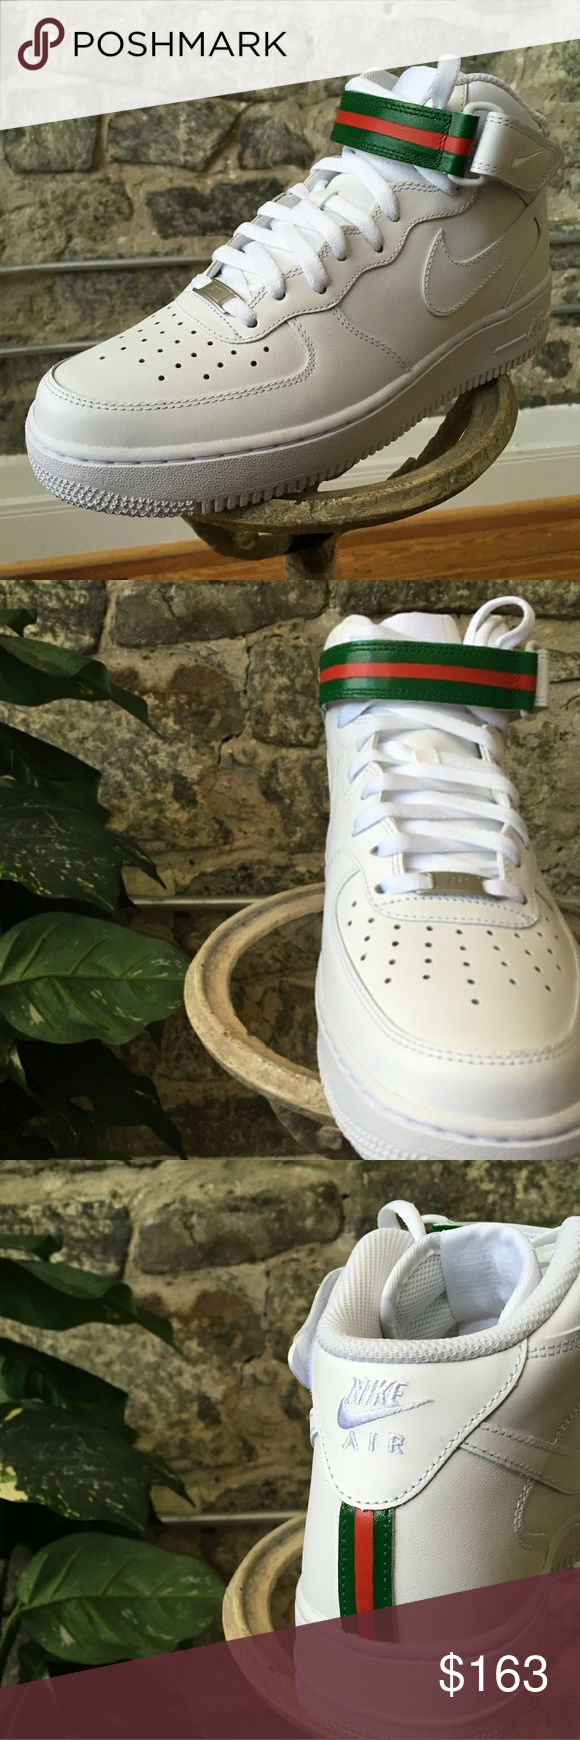 Gucci air force 1 Nike air force one gucci color way